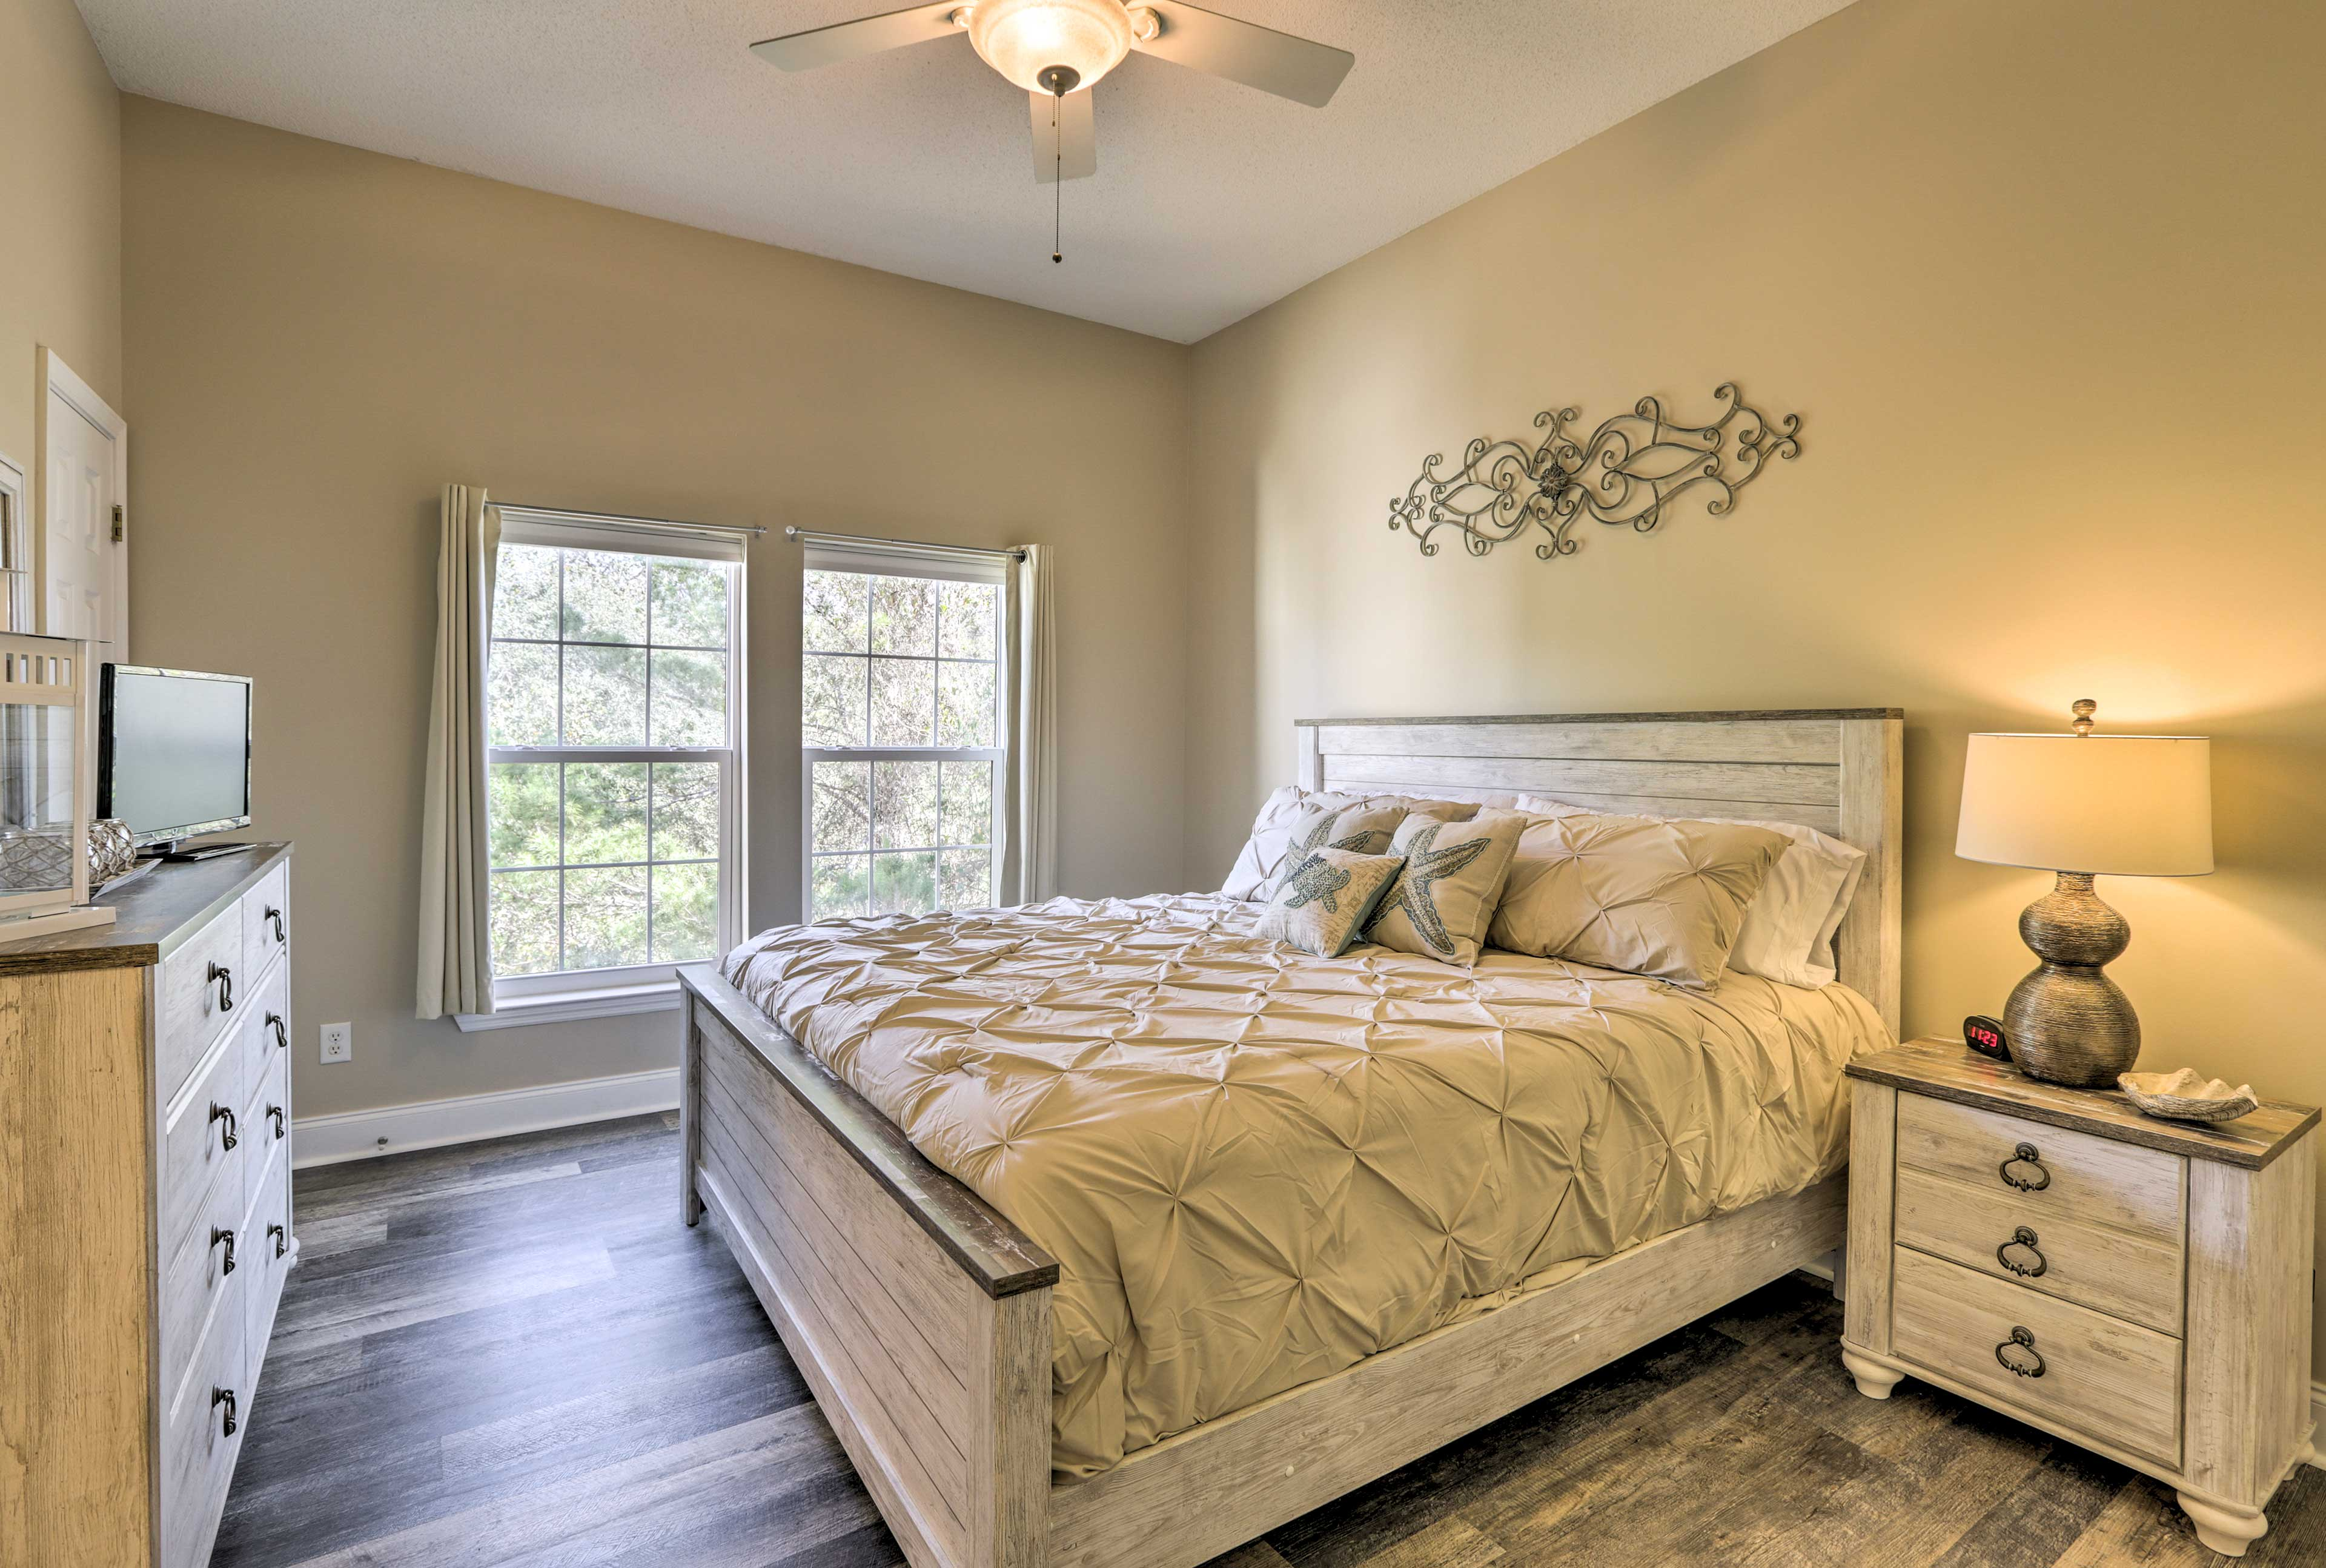 The master bedroom is decorated with elegant taupe, white, and khaki decor.